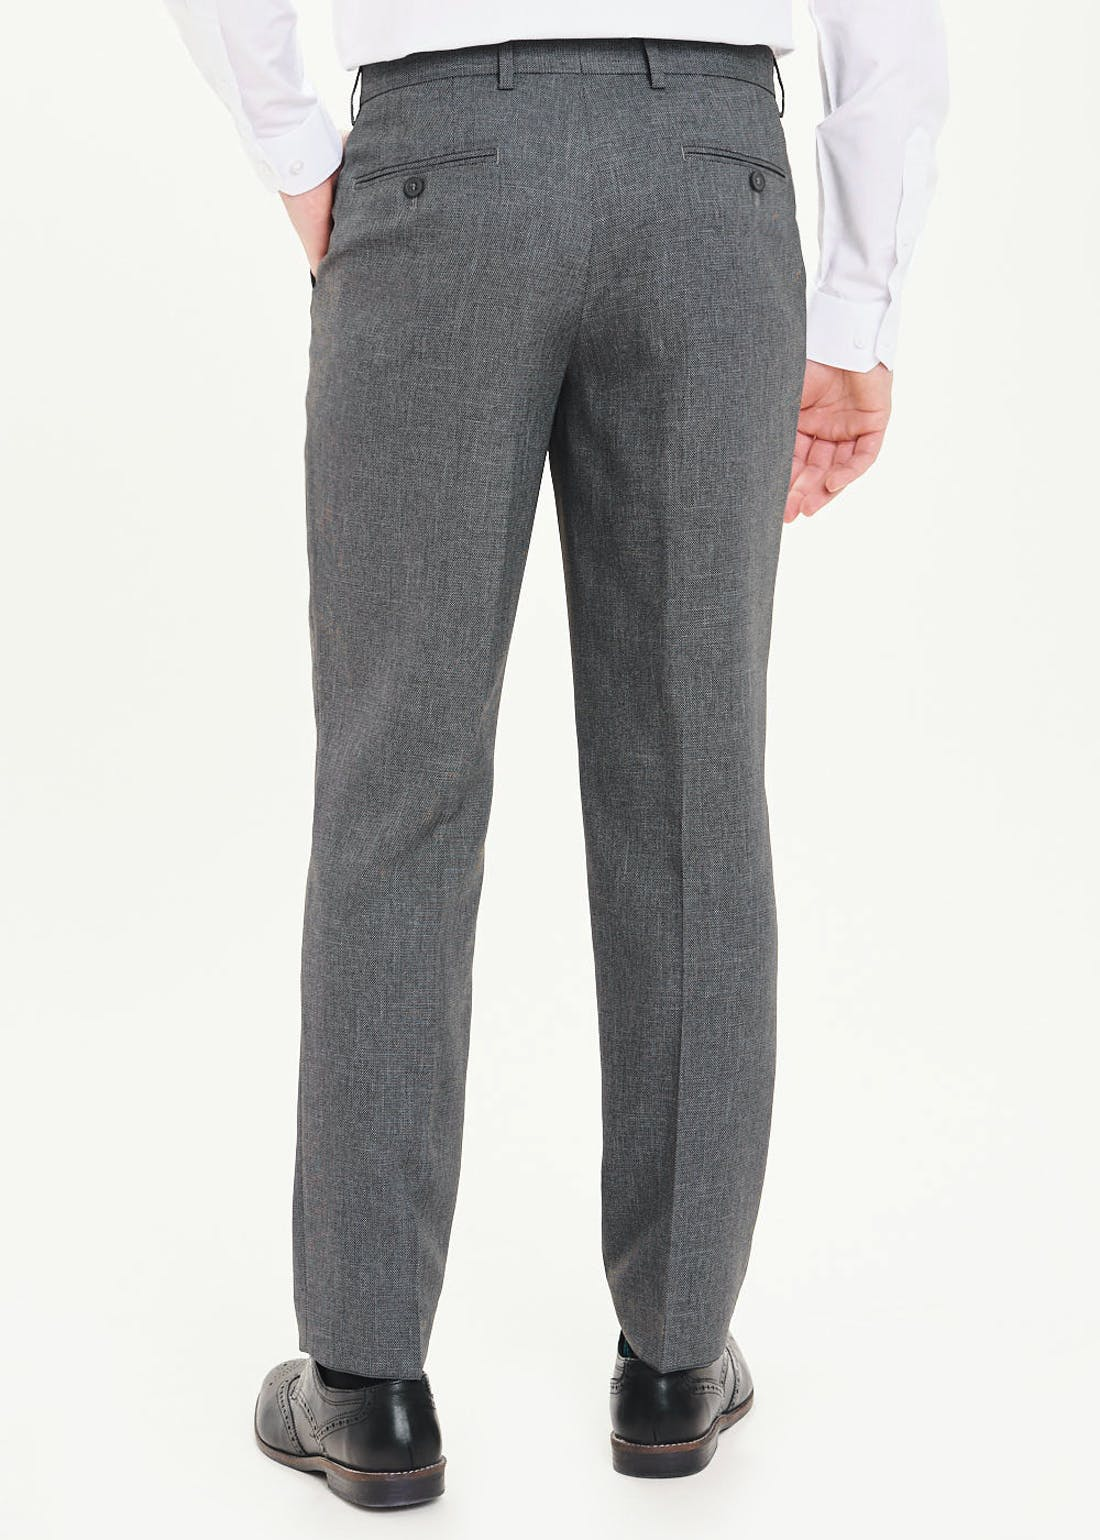 Taylor & Wright Ambleside Slim Fit Trousers